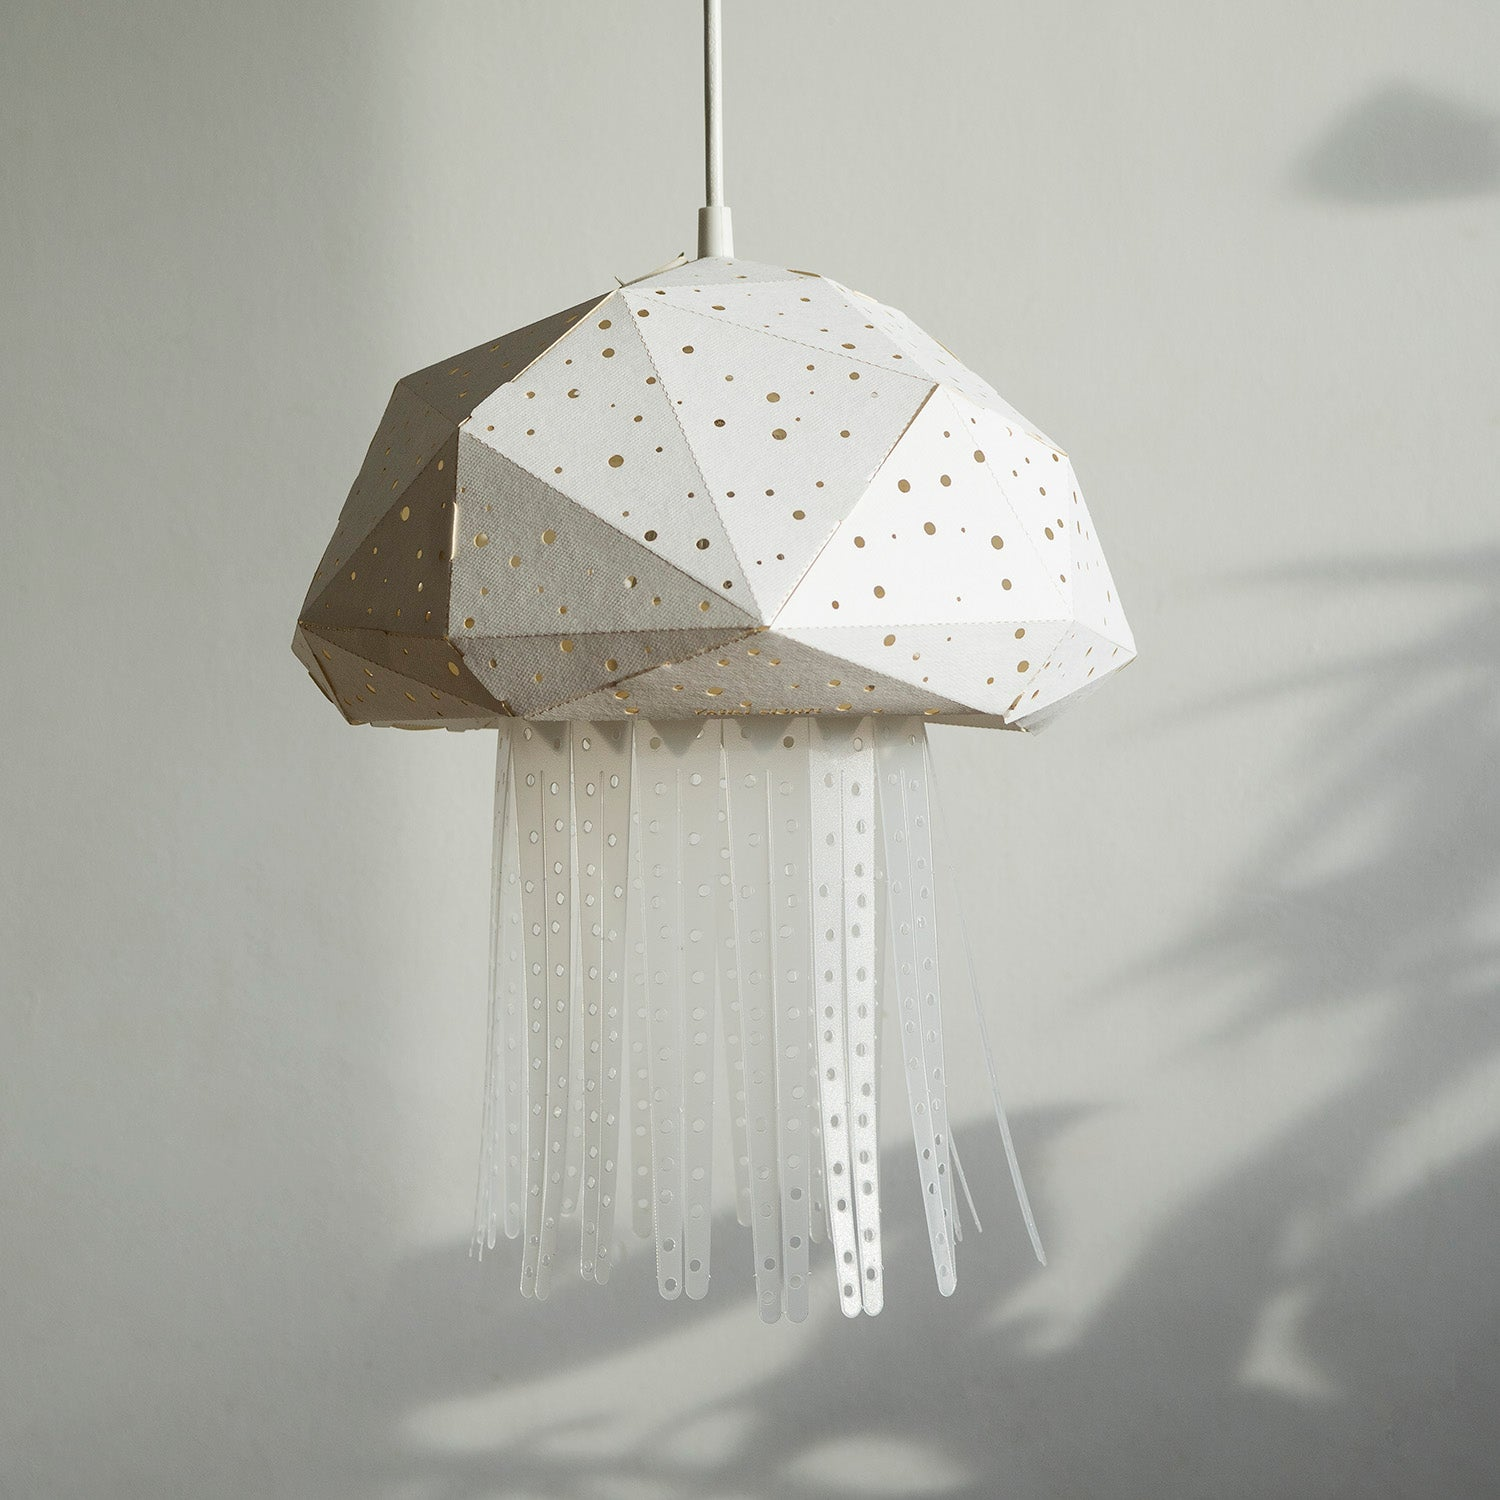 Geometric Jellyfish lamp hangs in the kids' room near the white wall.